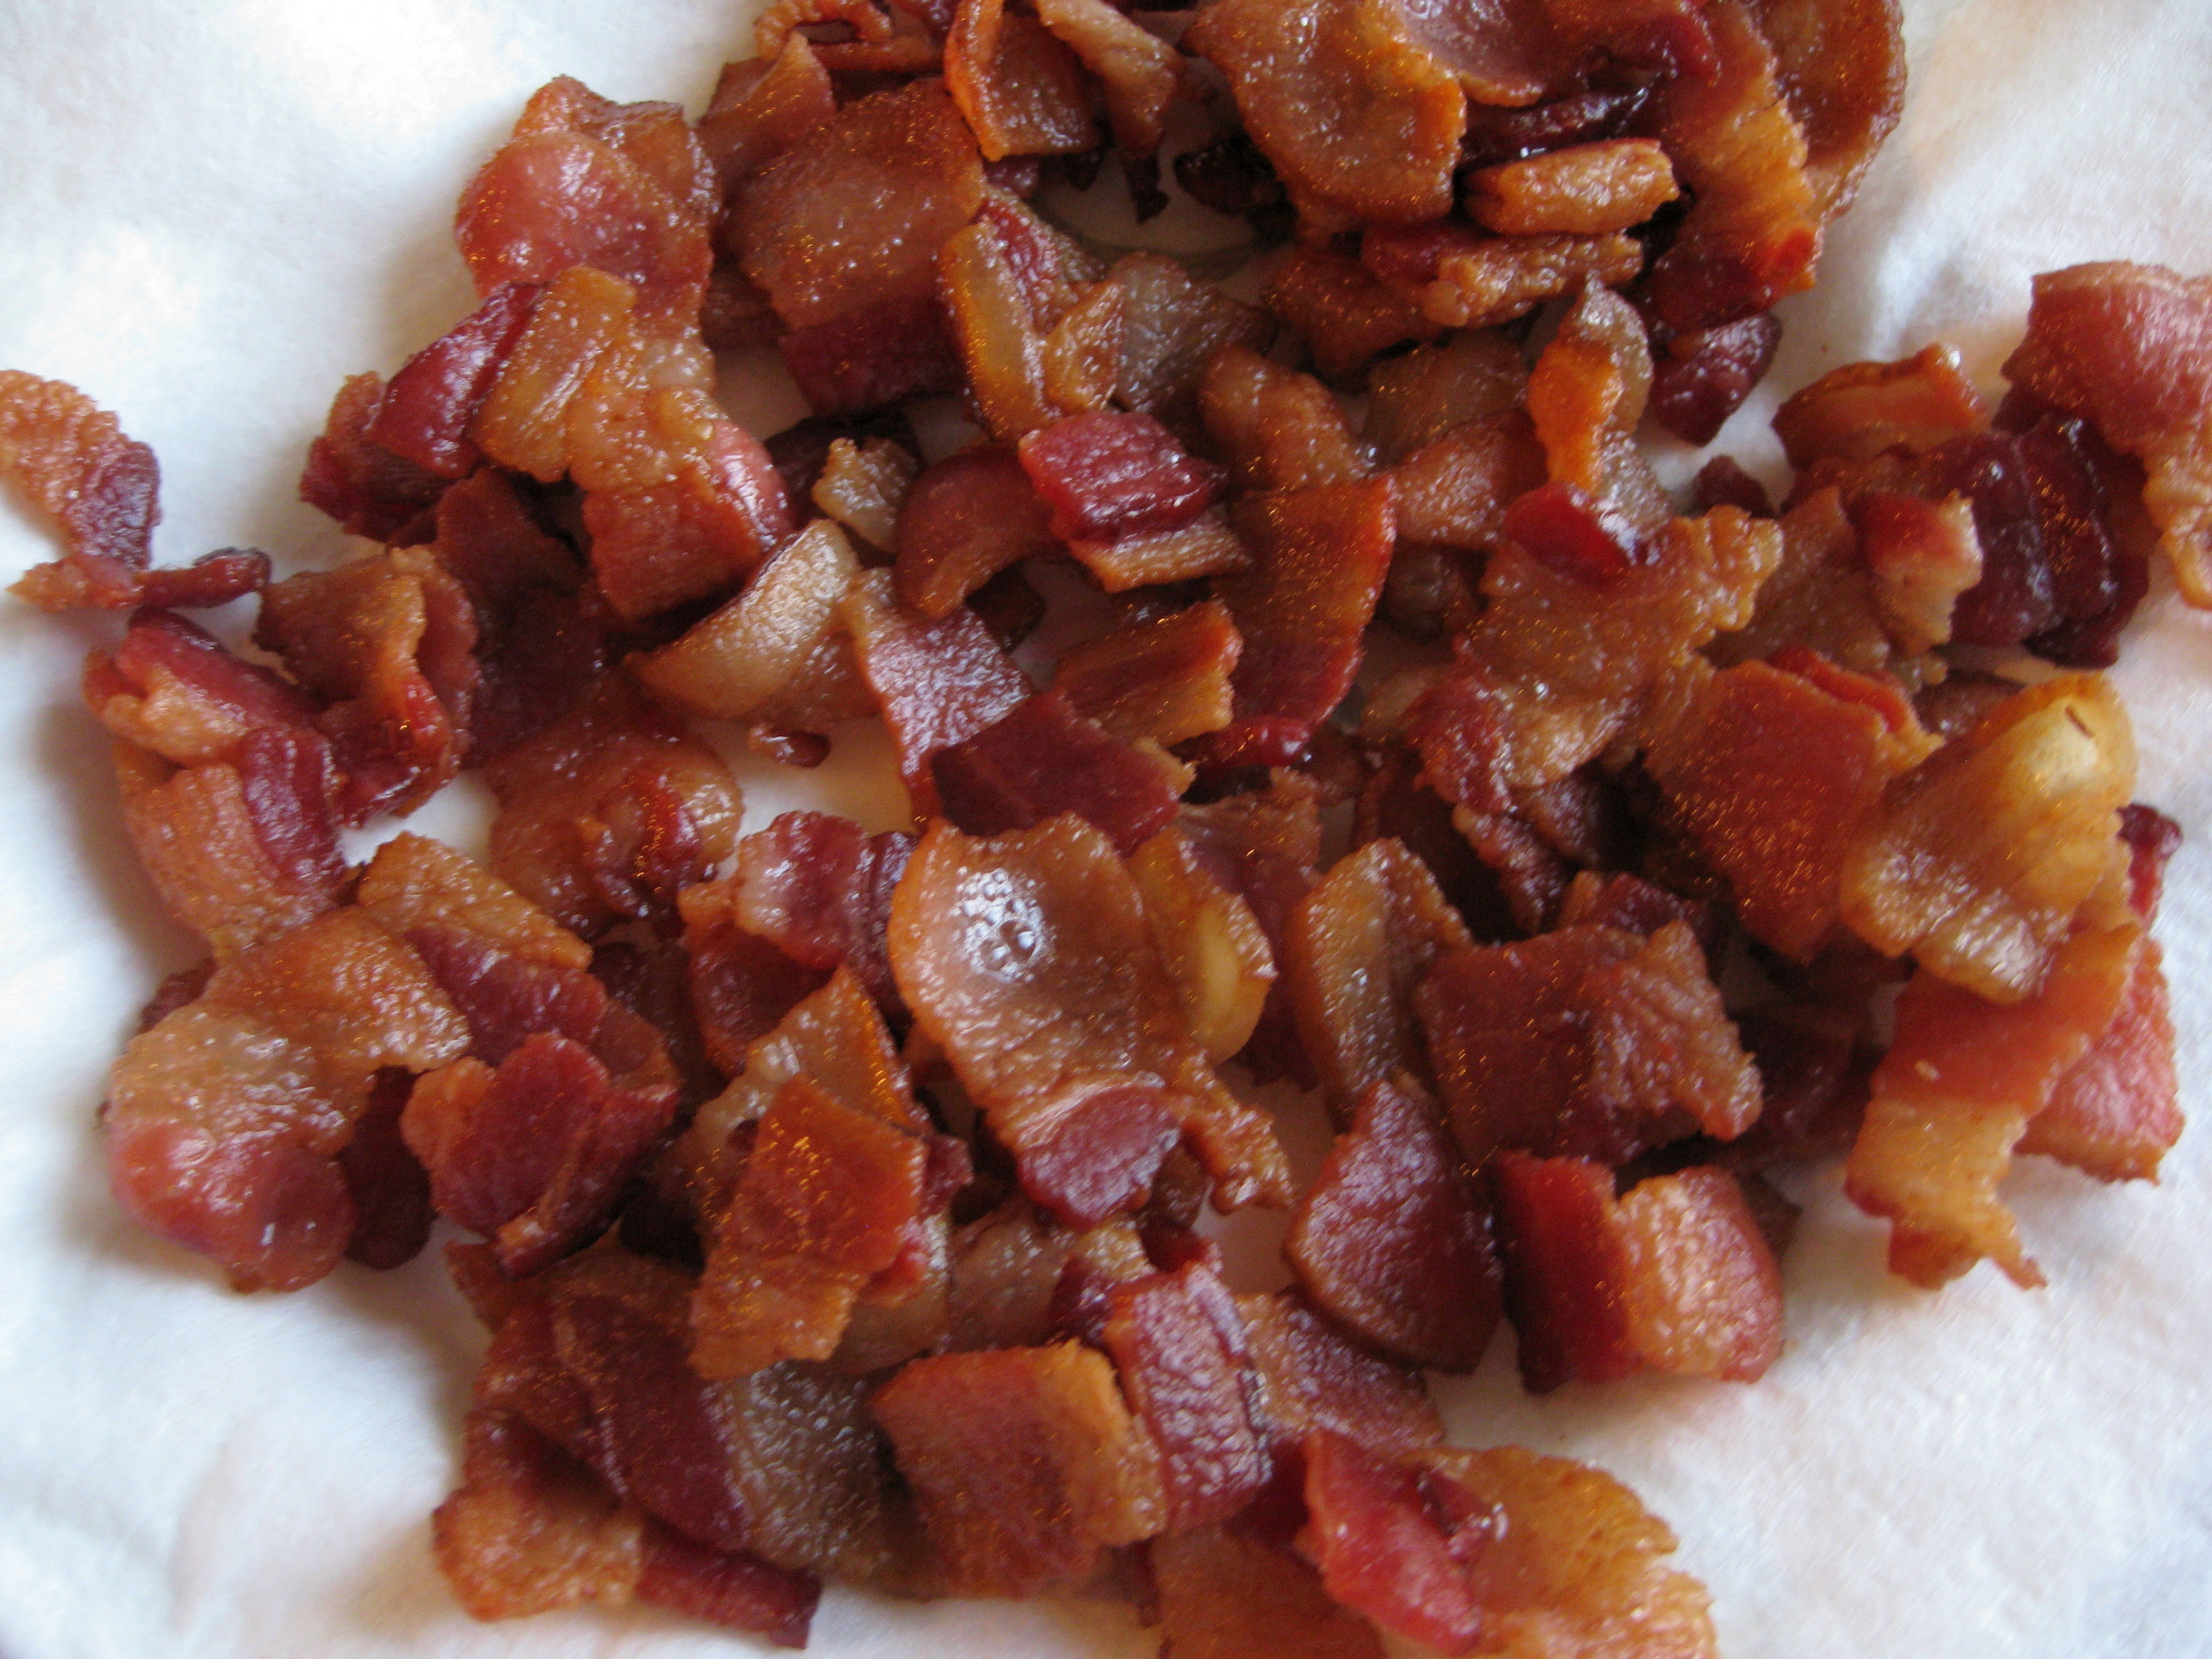 Bacon Wallpapers High Quality Download Free HD Wallpapers Download Free Images Wallpaper [1000image.com]